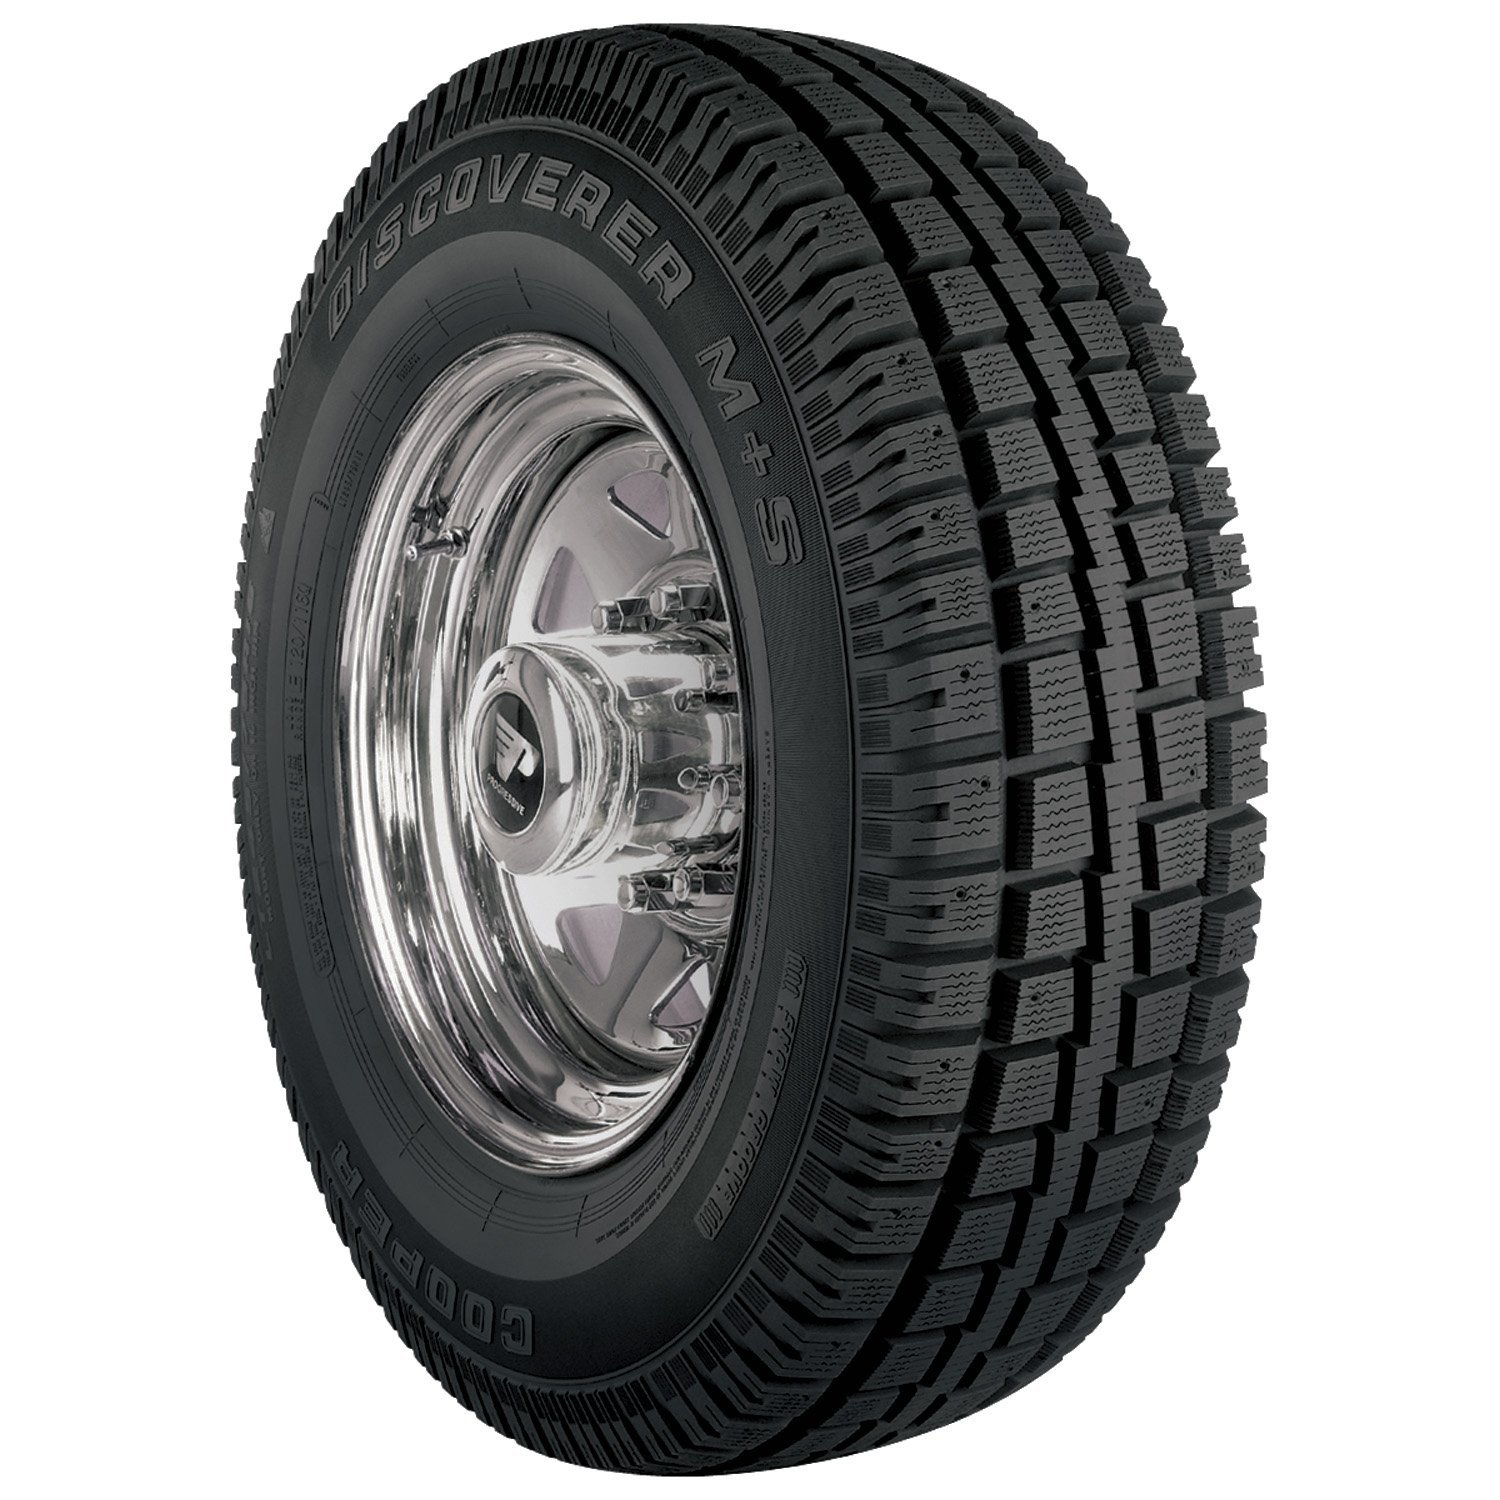 Gomme Nuove Cooper Tyres 225/65 R17 106H DISC.WINTER XL M+S pneumatici nuovi Invernale